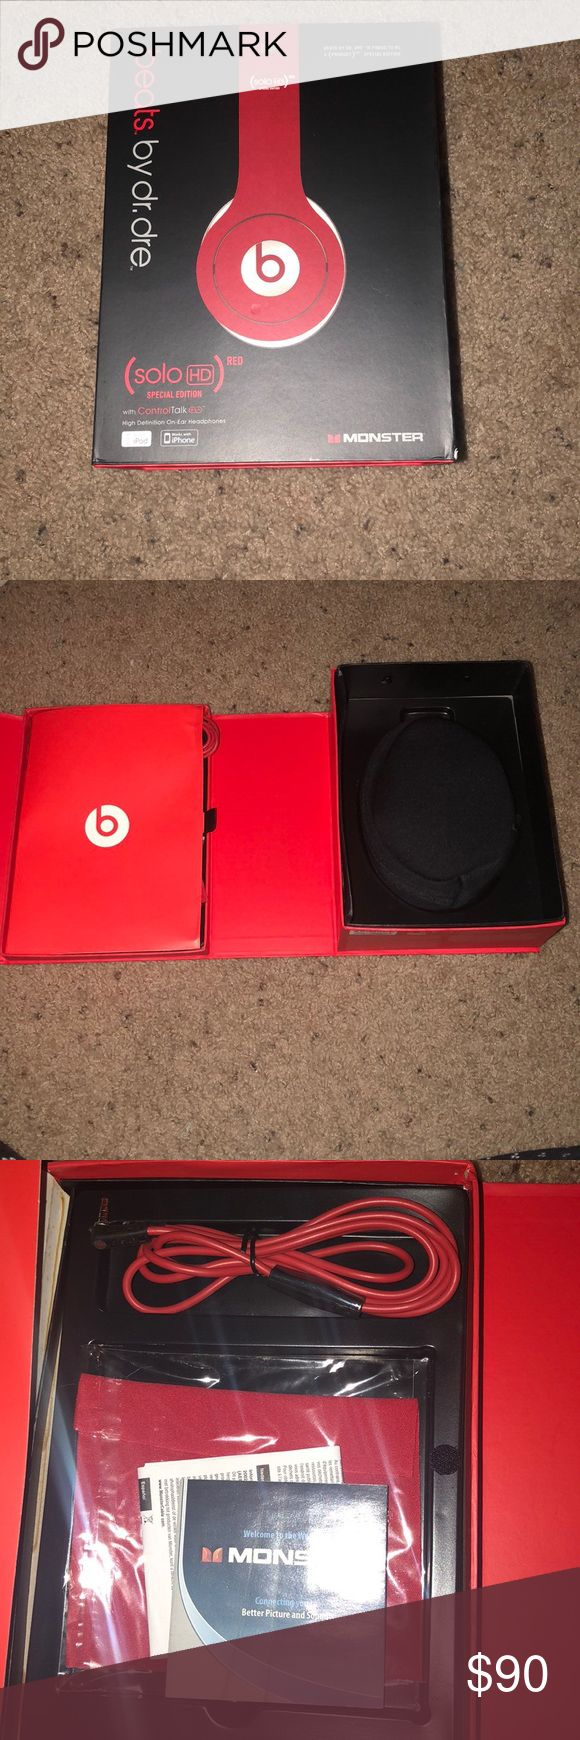 BRAND NEW BEATS SOLO HD Brand new Solo HD Beats by Dr. Dre. In special edition red. They've never been used and nothing wrong with them. Comes with headphones, headphones case, cord, and cleaning wipe. Ordered online so no tags but brand new and never been worn. Accessories